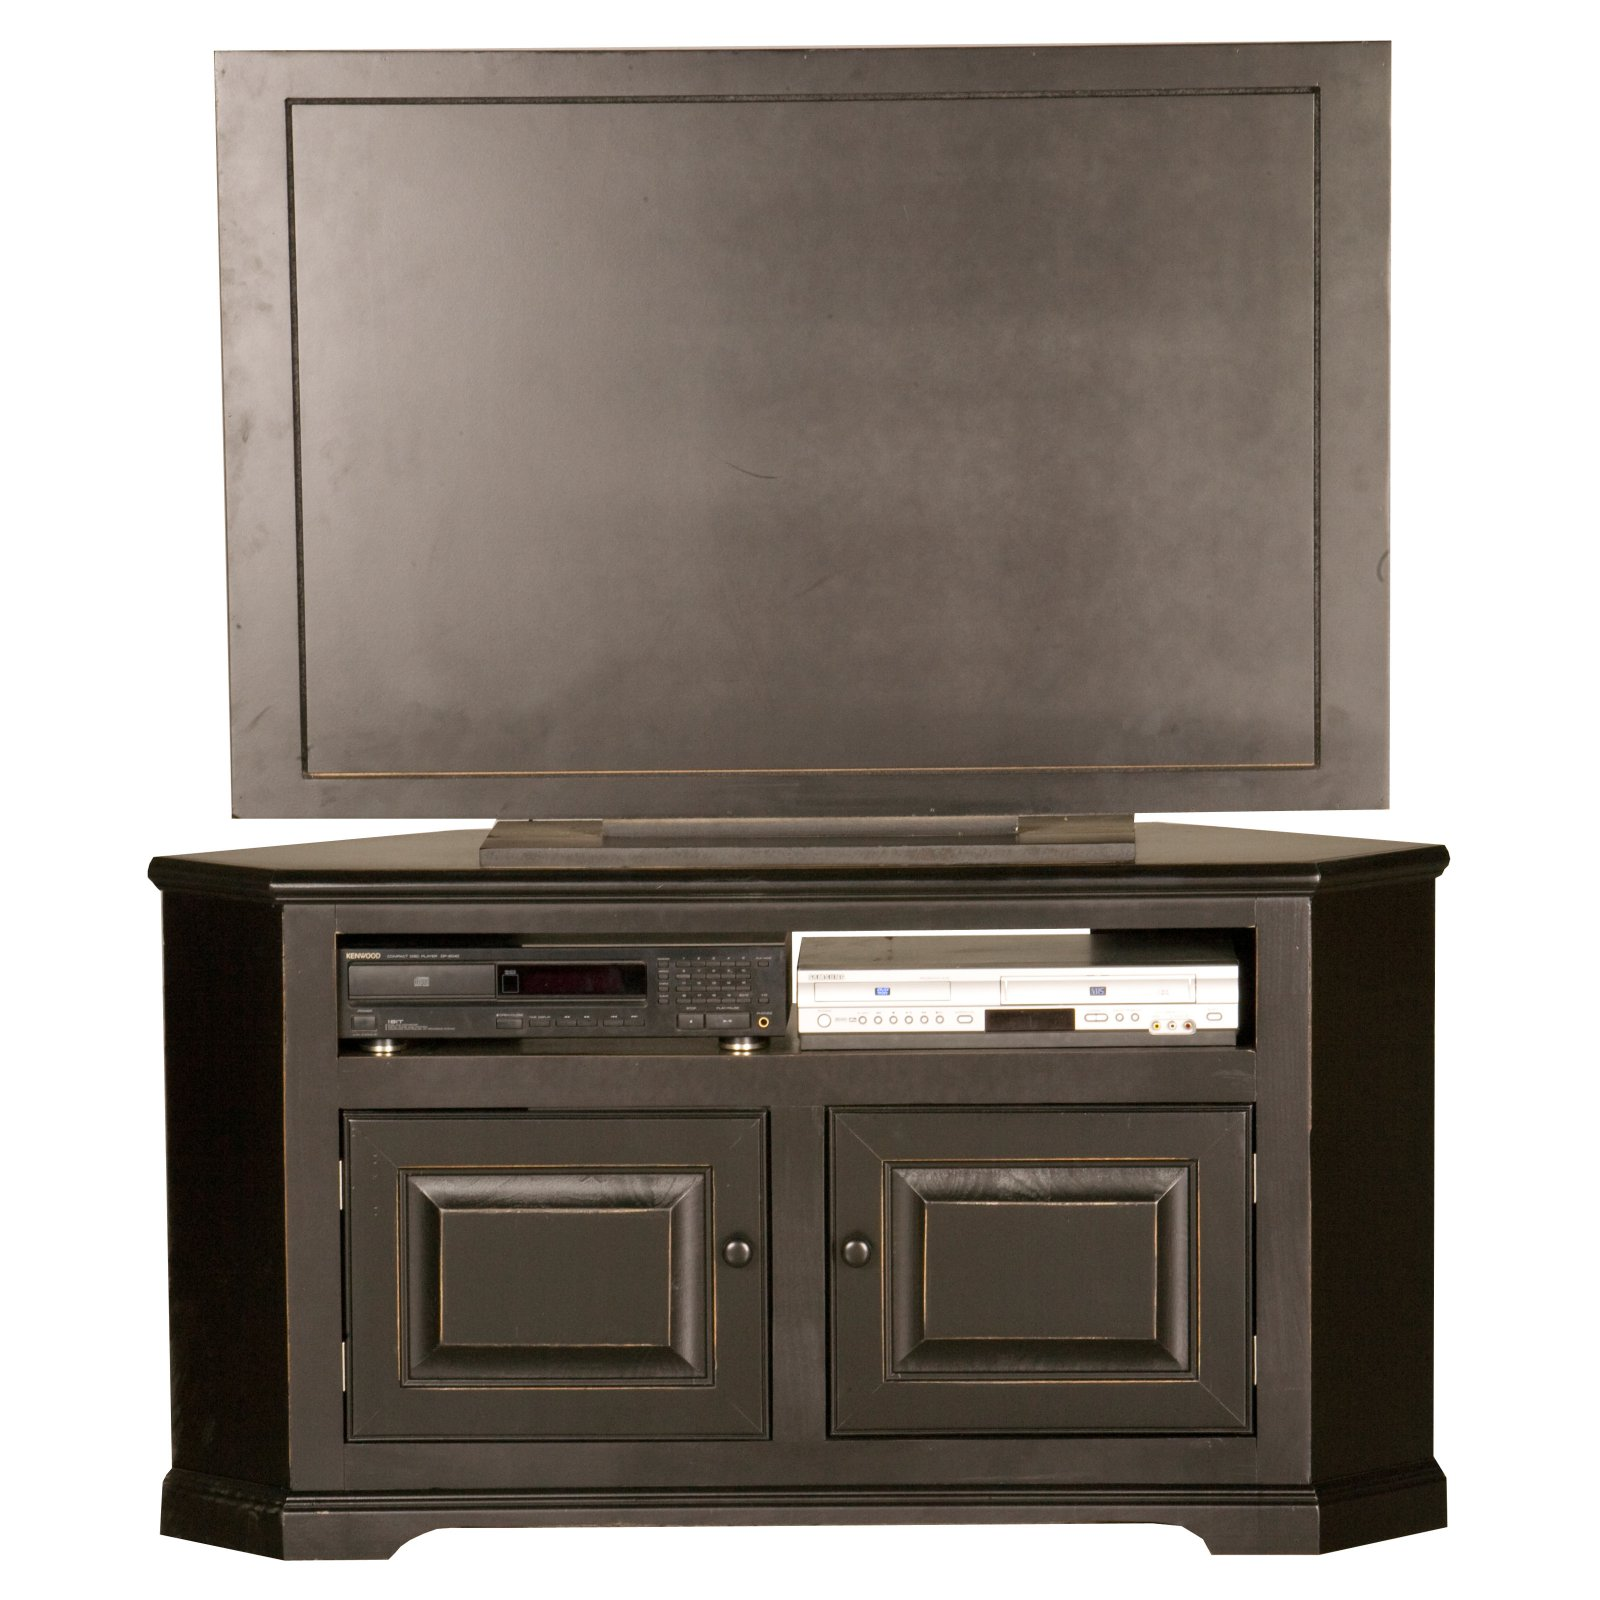 Eagle Furniture Savannah 50 in. Corner TV Stand